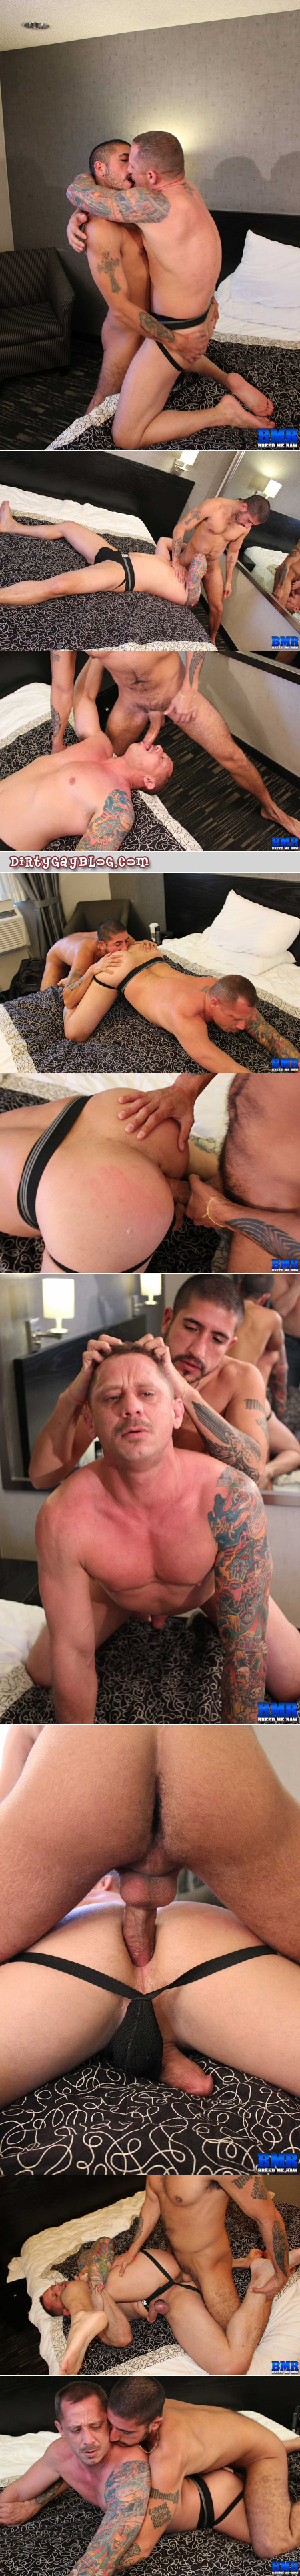 Uncut Latino fucks a mustachioed and heavily tattooed Daddy bareback.